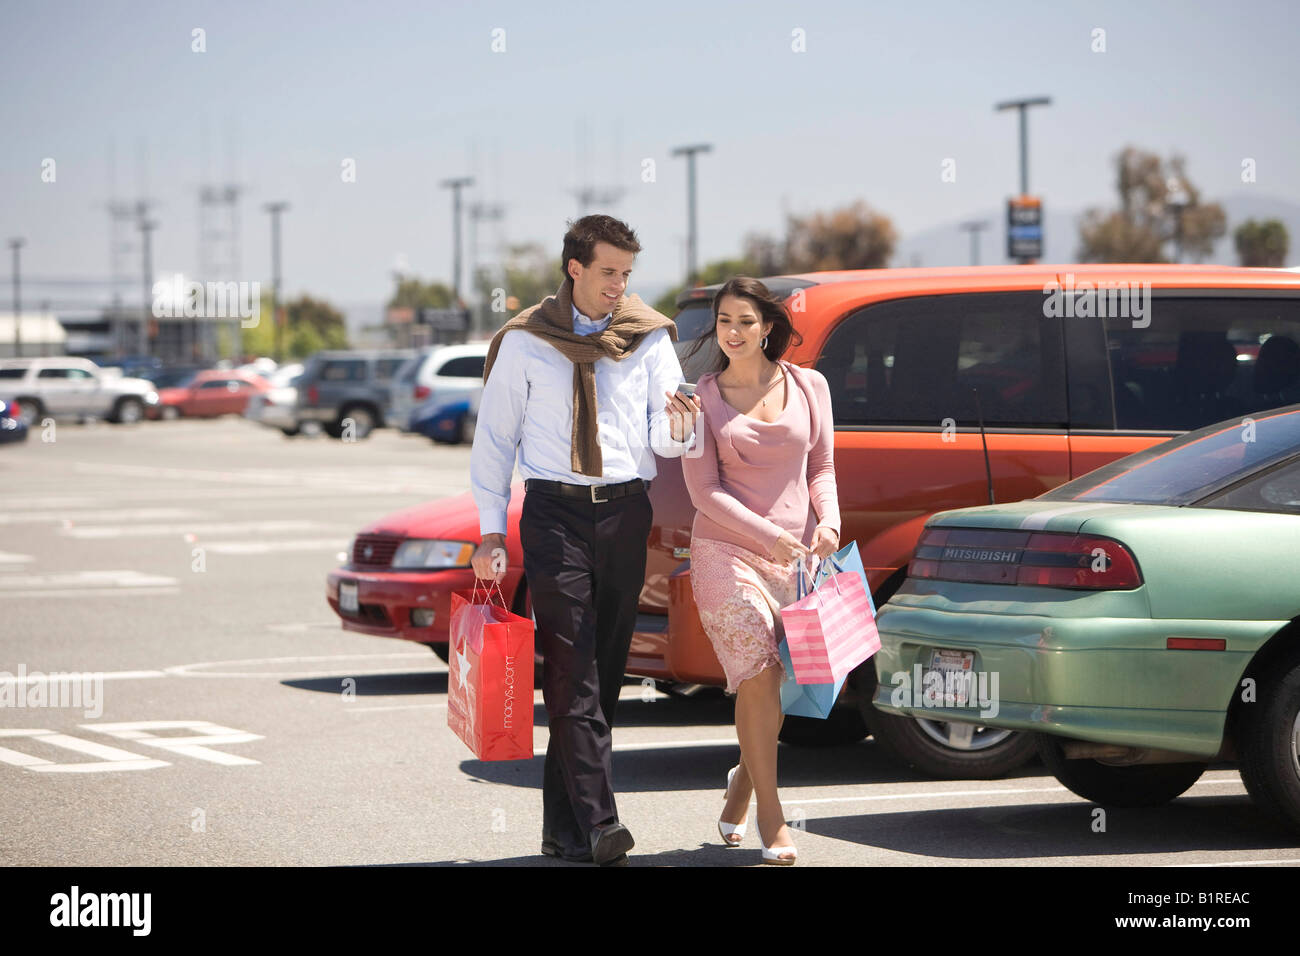 A young couple walking through a parking lot filled with cars carrying a hand held device and several shopping bags. - Stock Image